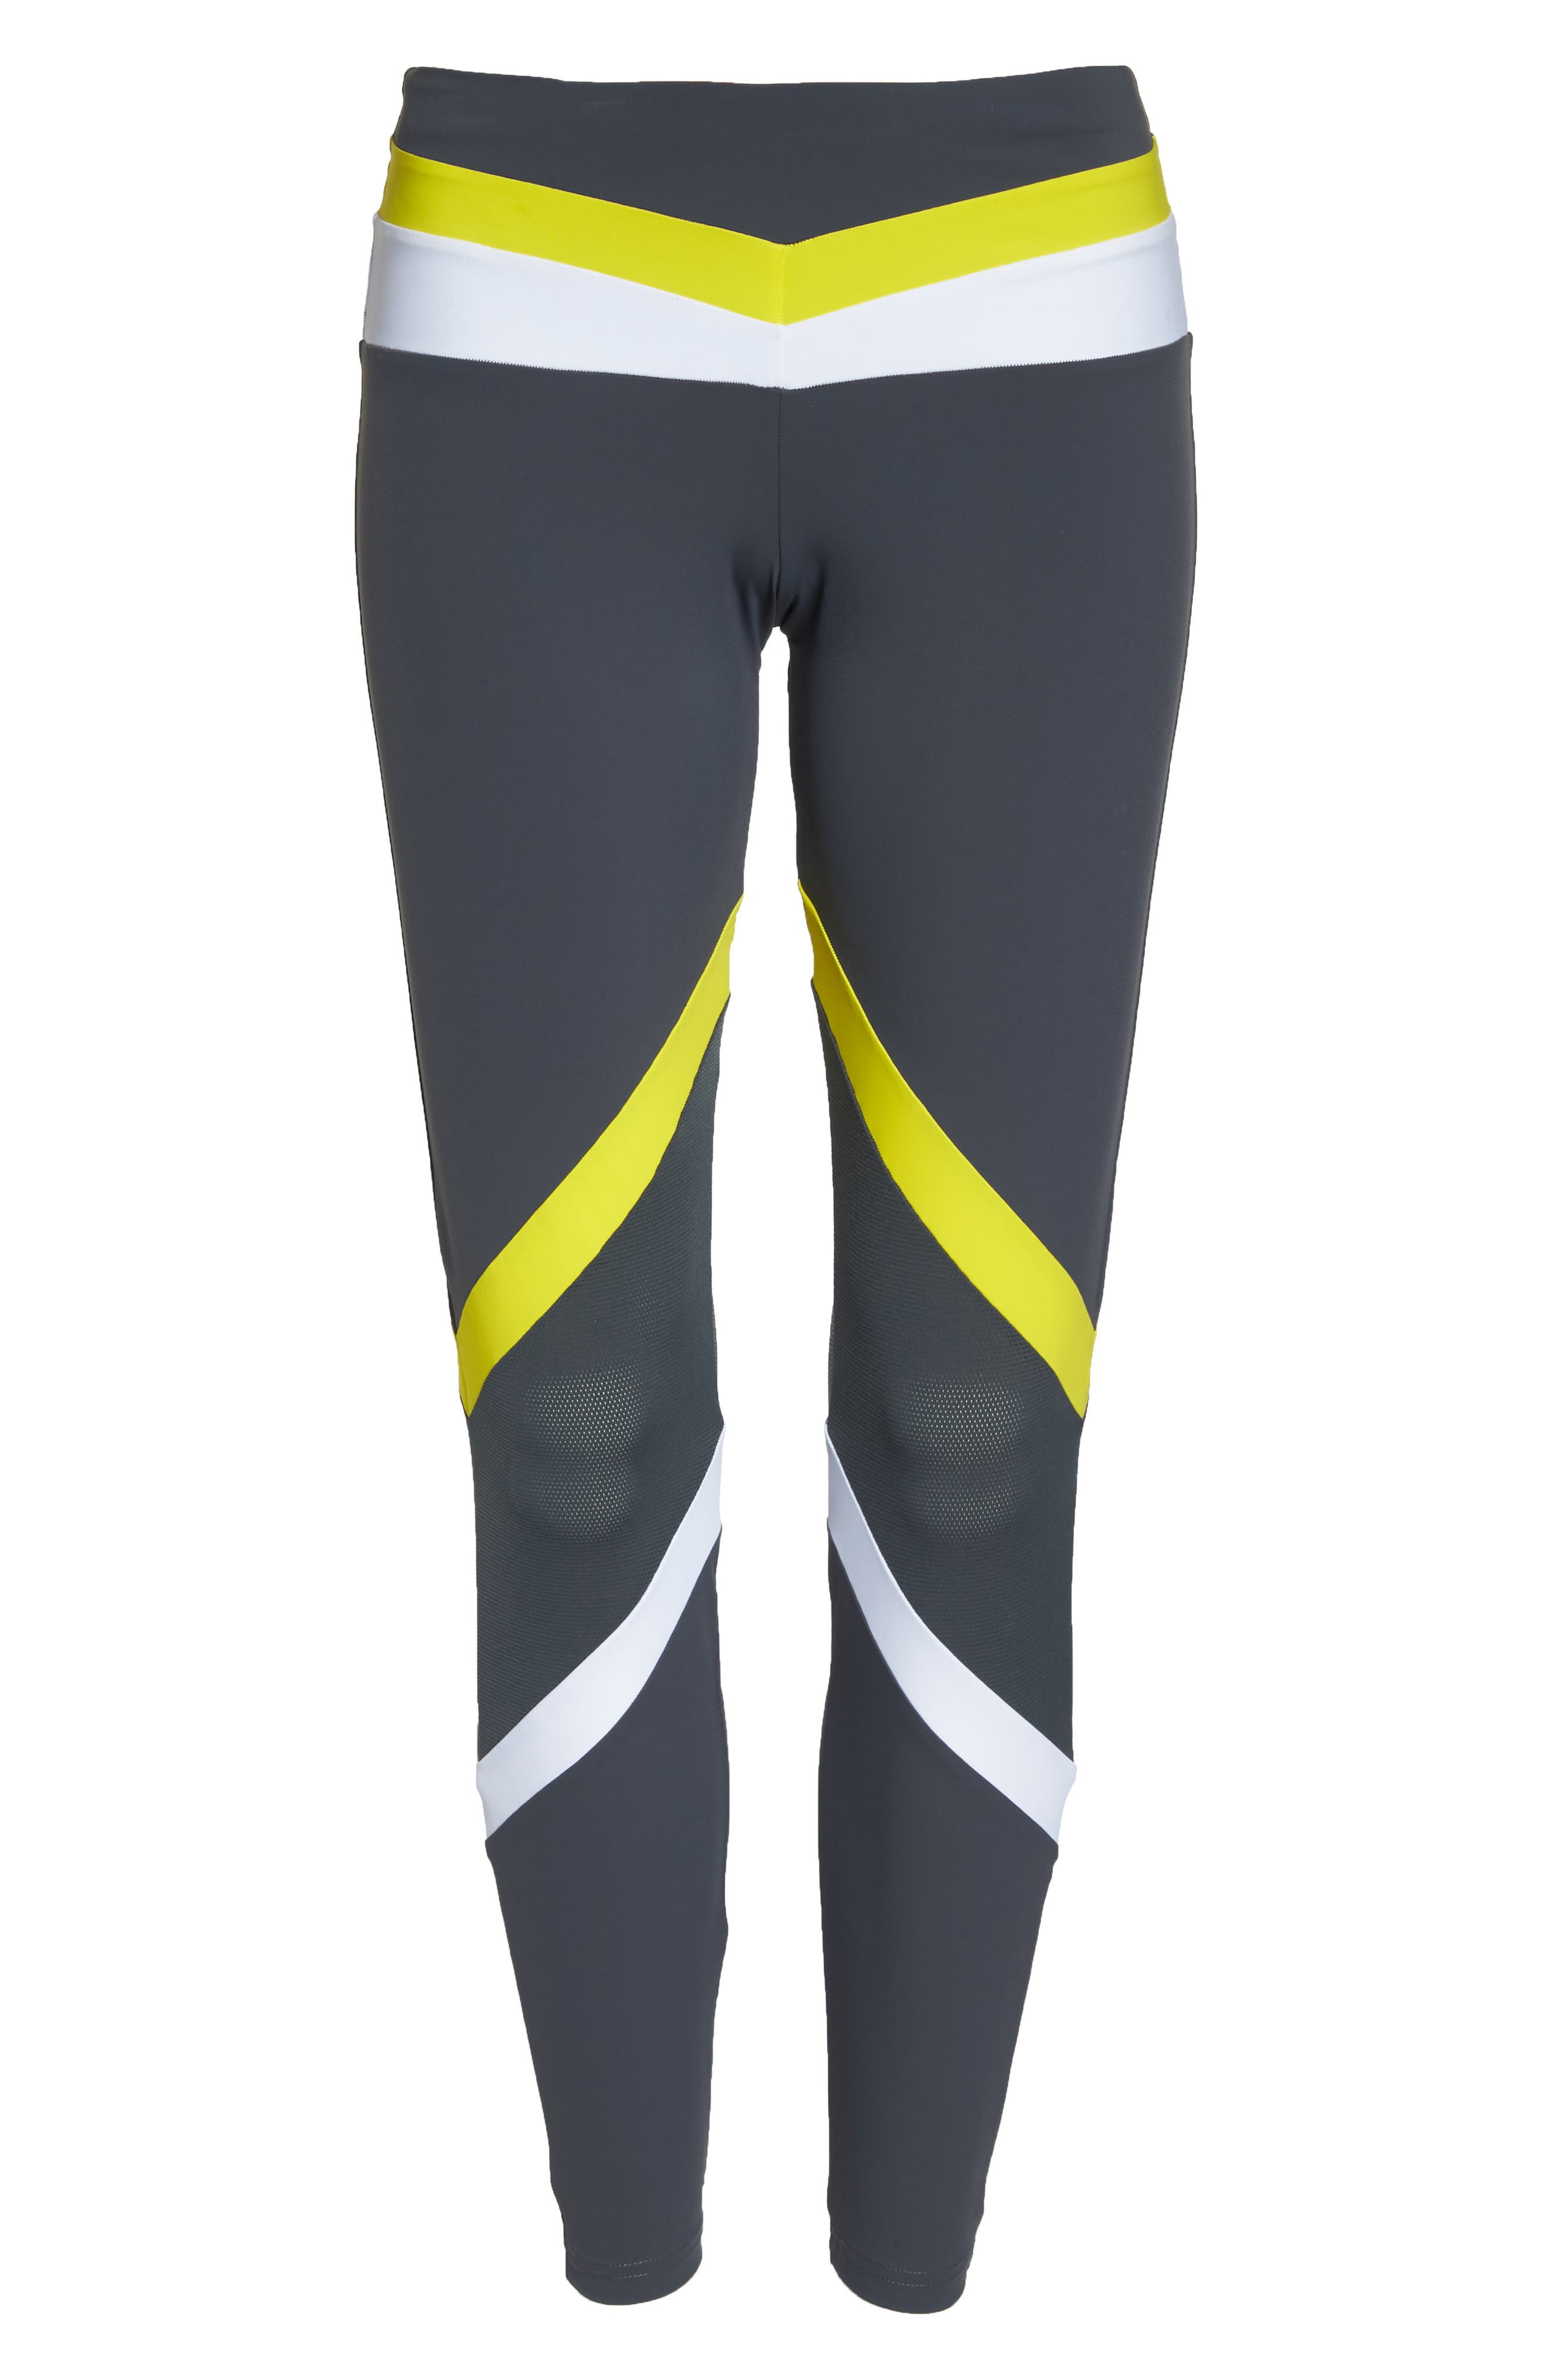 BoomBoom Athletica Tricolor Leggings,                             Alternate thumbnail 7, color,                             GREY/ WHITE/ YELLOW